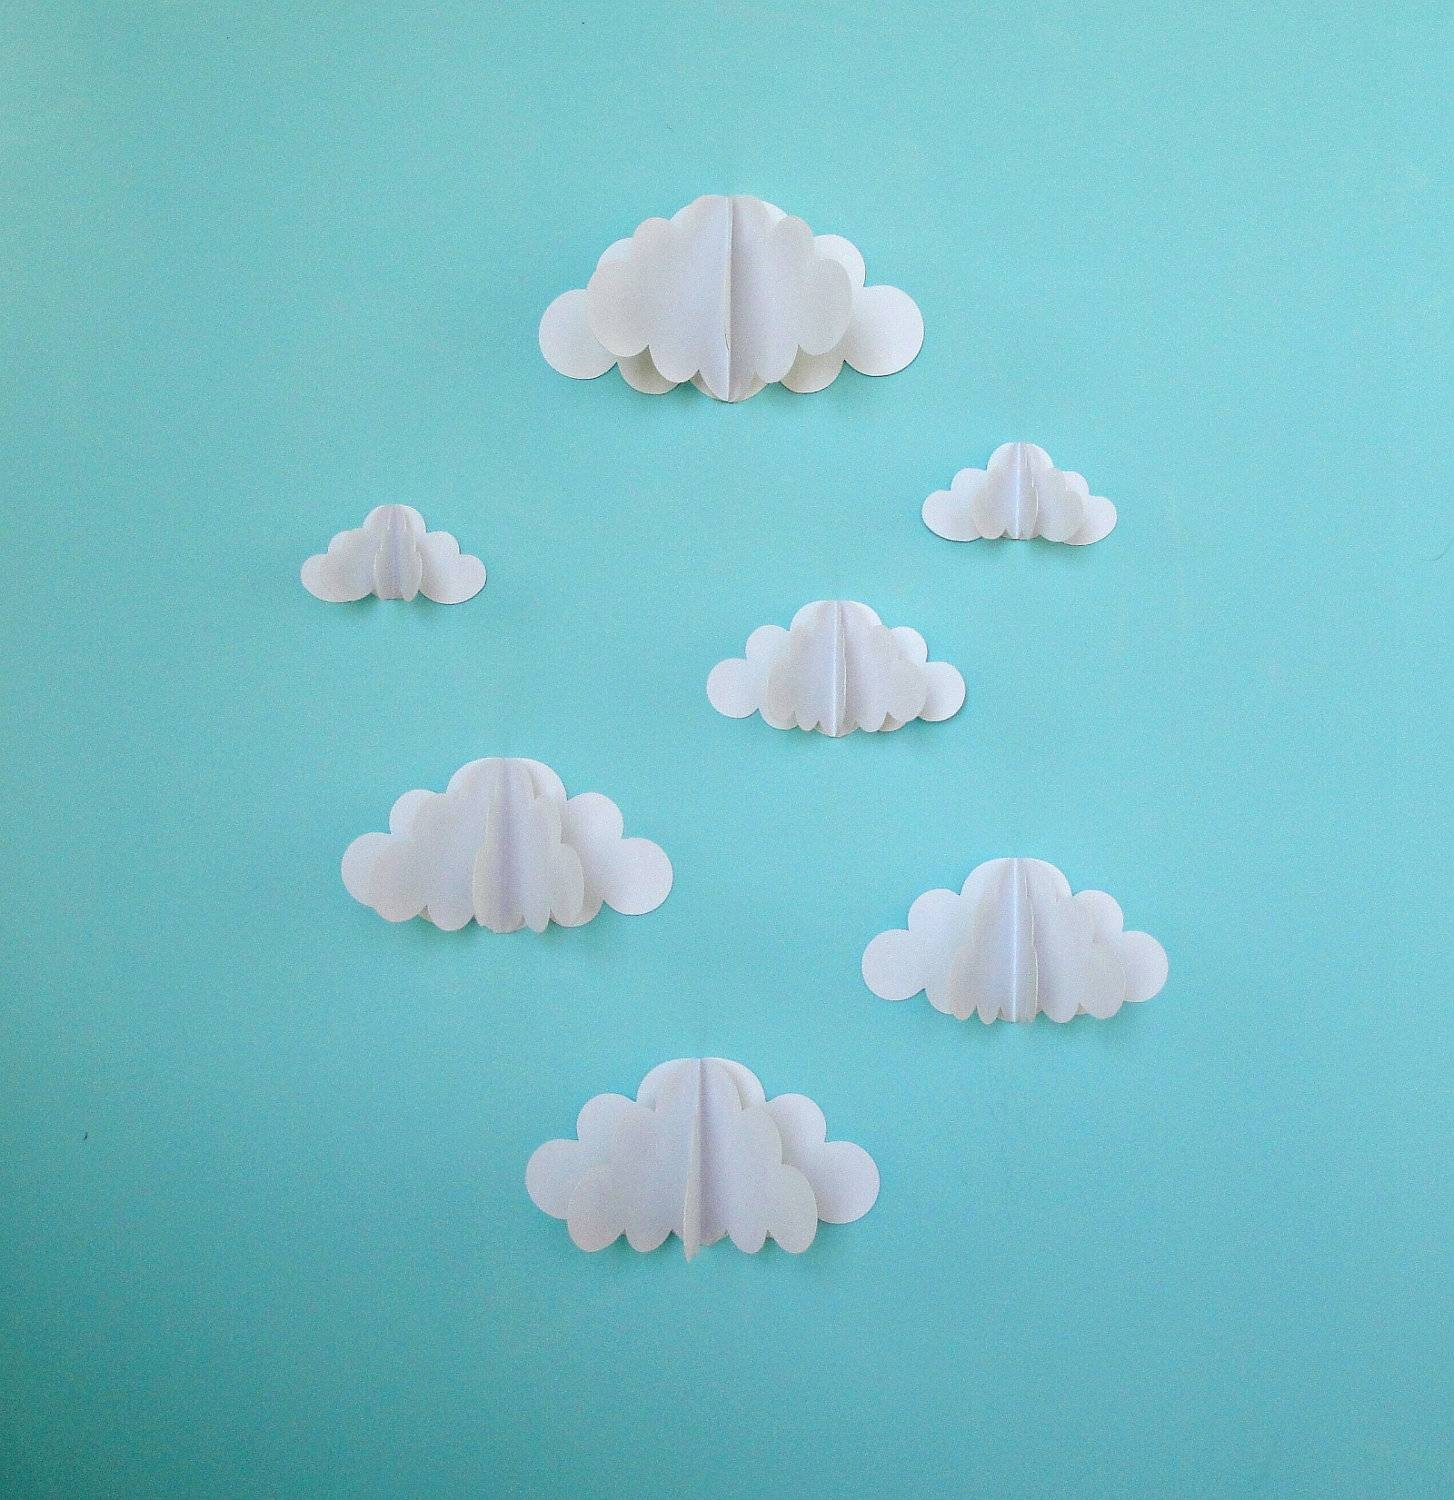 3D Paper Wall Clouds 3D Paper Wall Art/wall Decor/wall For Most Up To Date 3D Paper Wall Art (View 22 of 25)